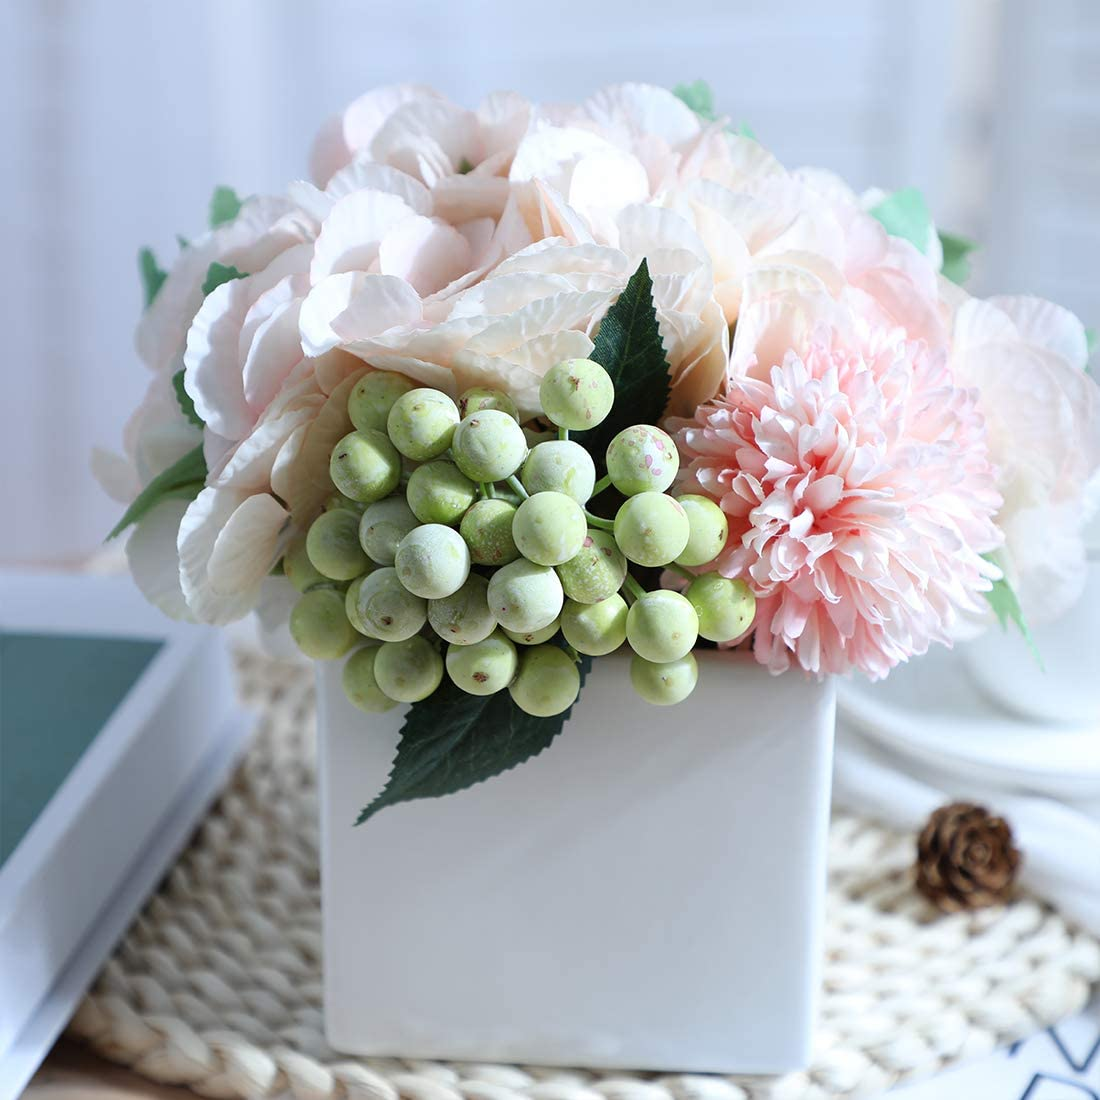 A Cup of Tea Artificial Flowers Pink Hydrangea for Wedding Decor Silk Fake Plants in White Vase, Decorative Simulation Berry for Home Indoor Living Room Bedroom Tabletop Centerpiece Decor